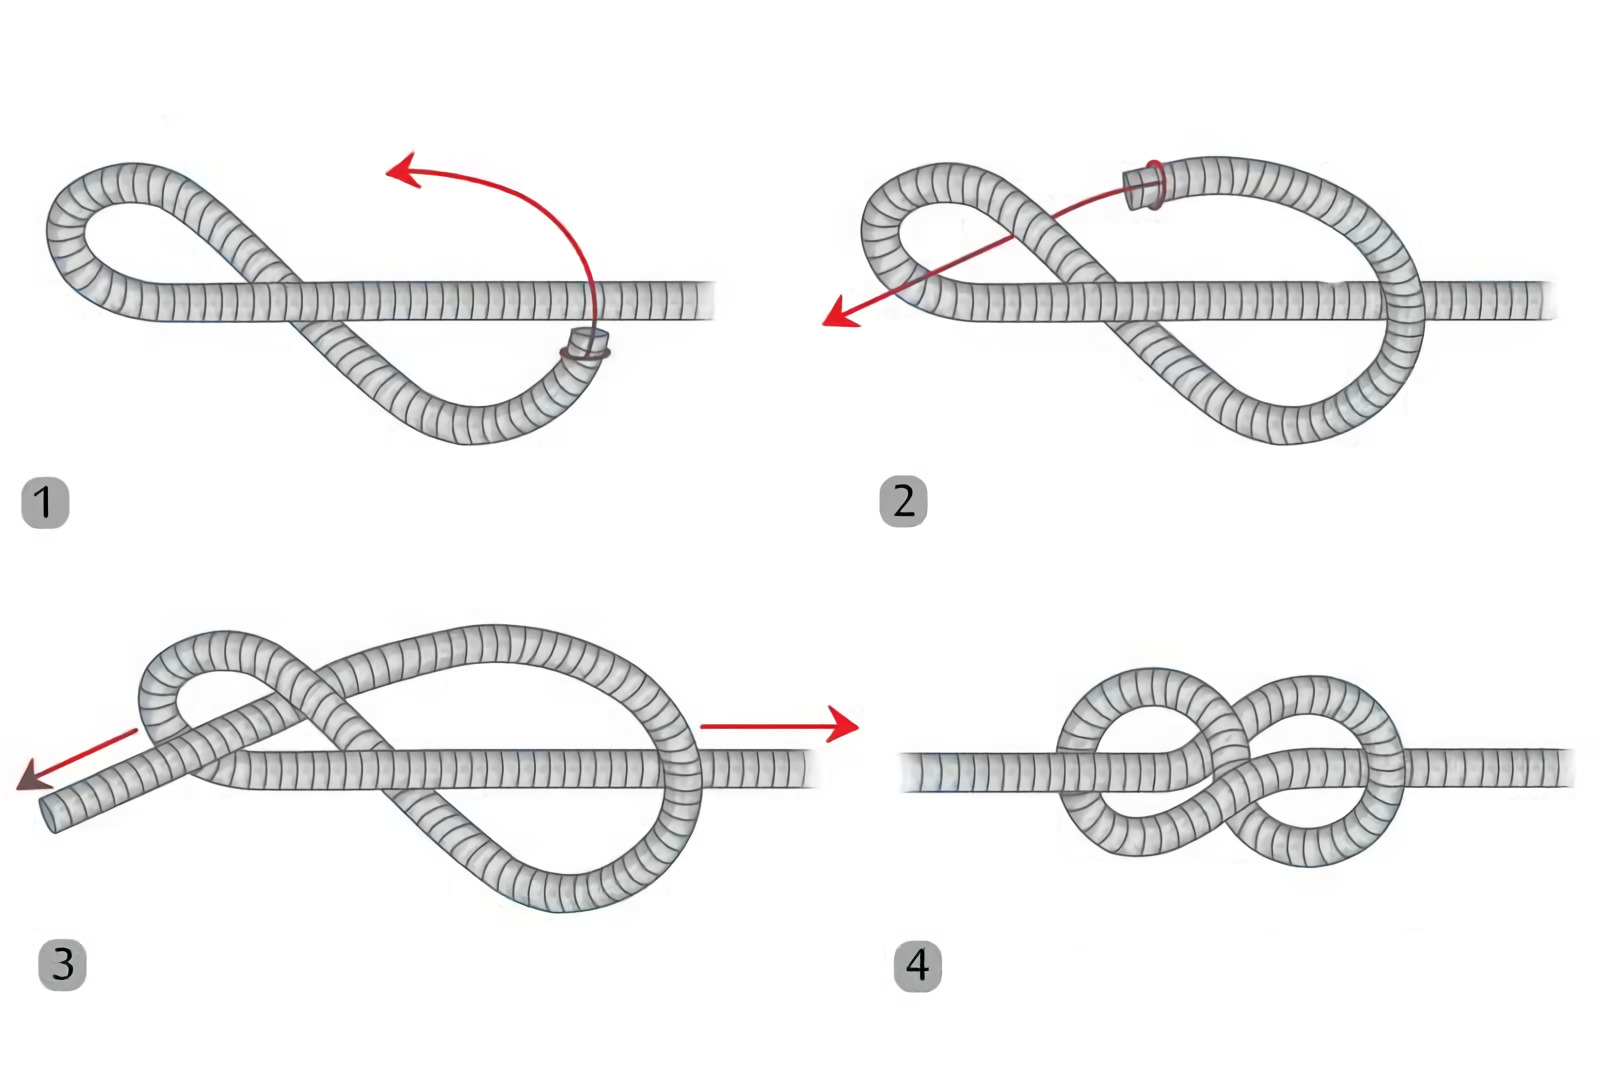 this is what a figure eight knot looks like